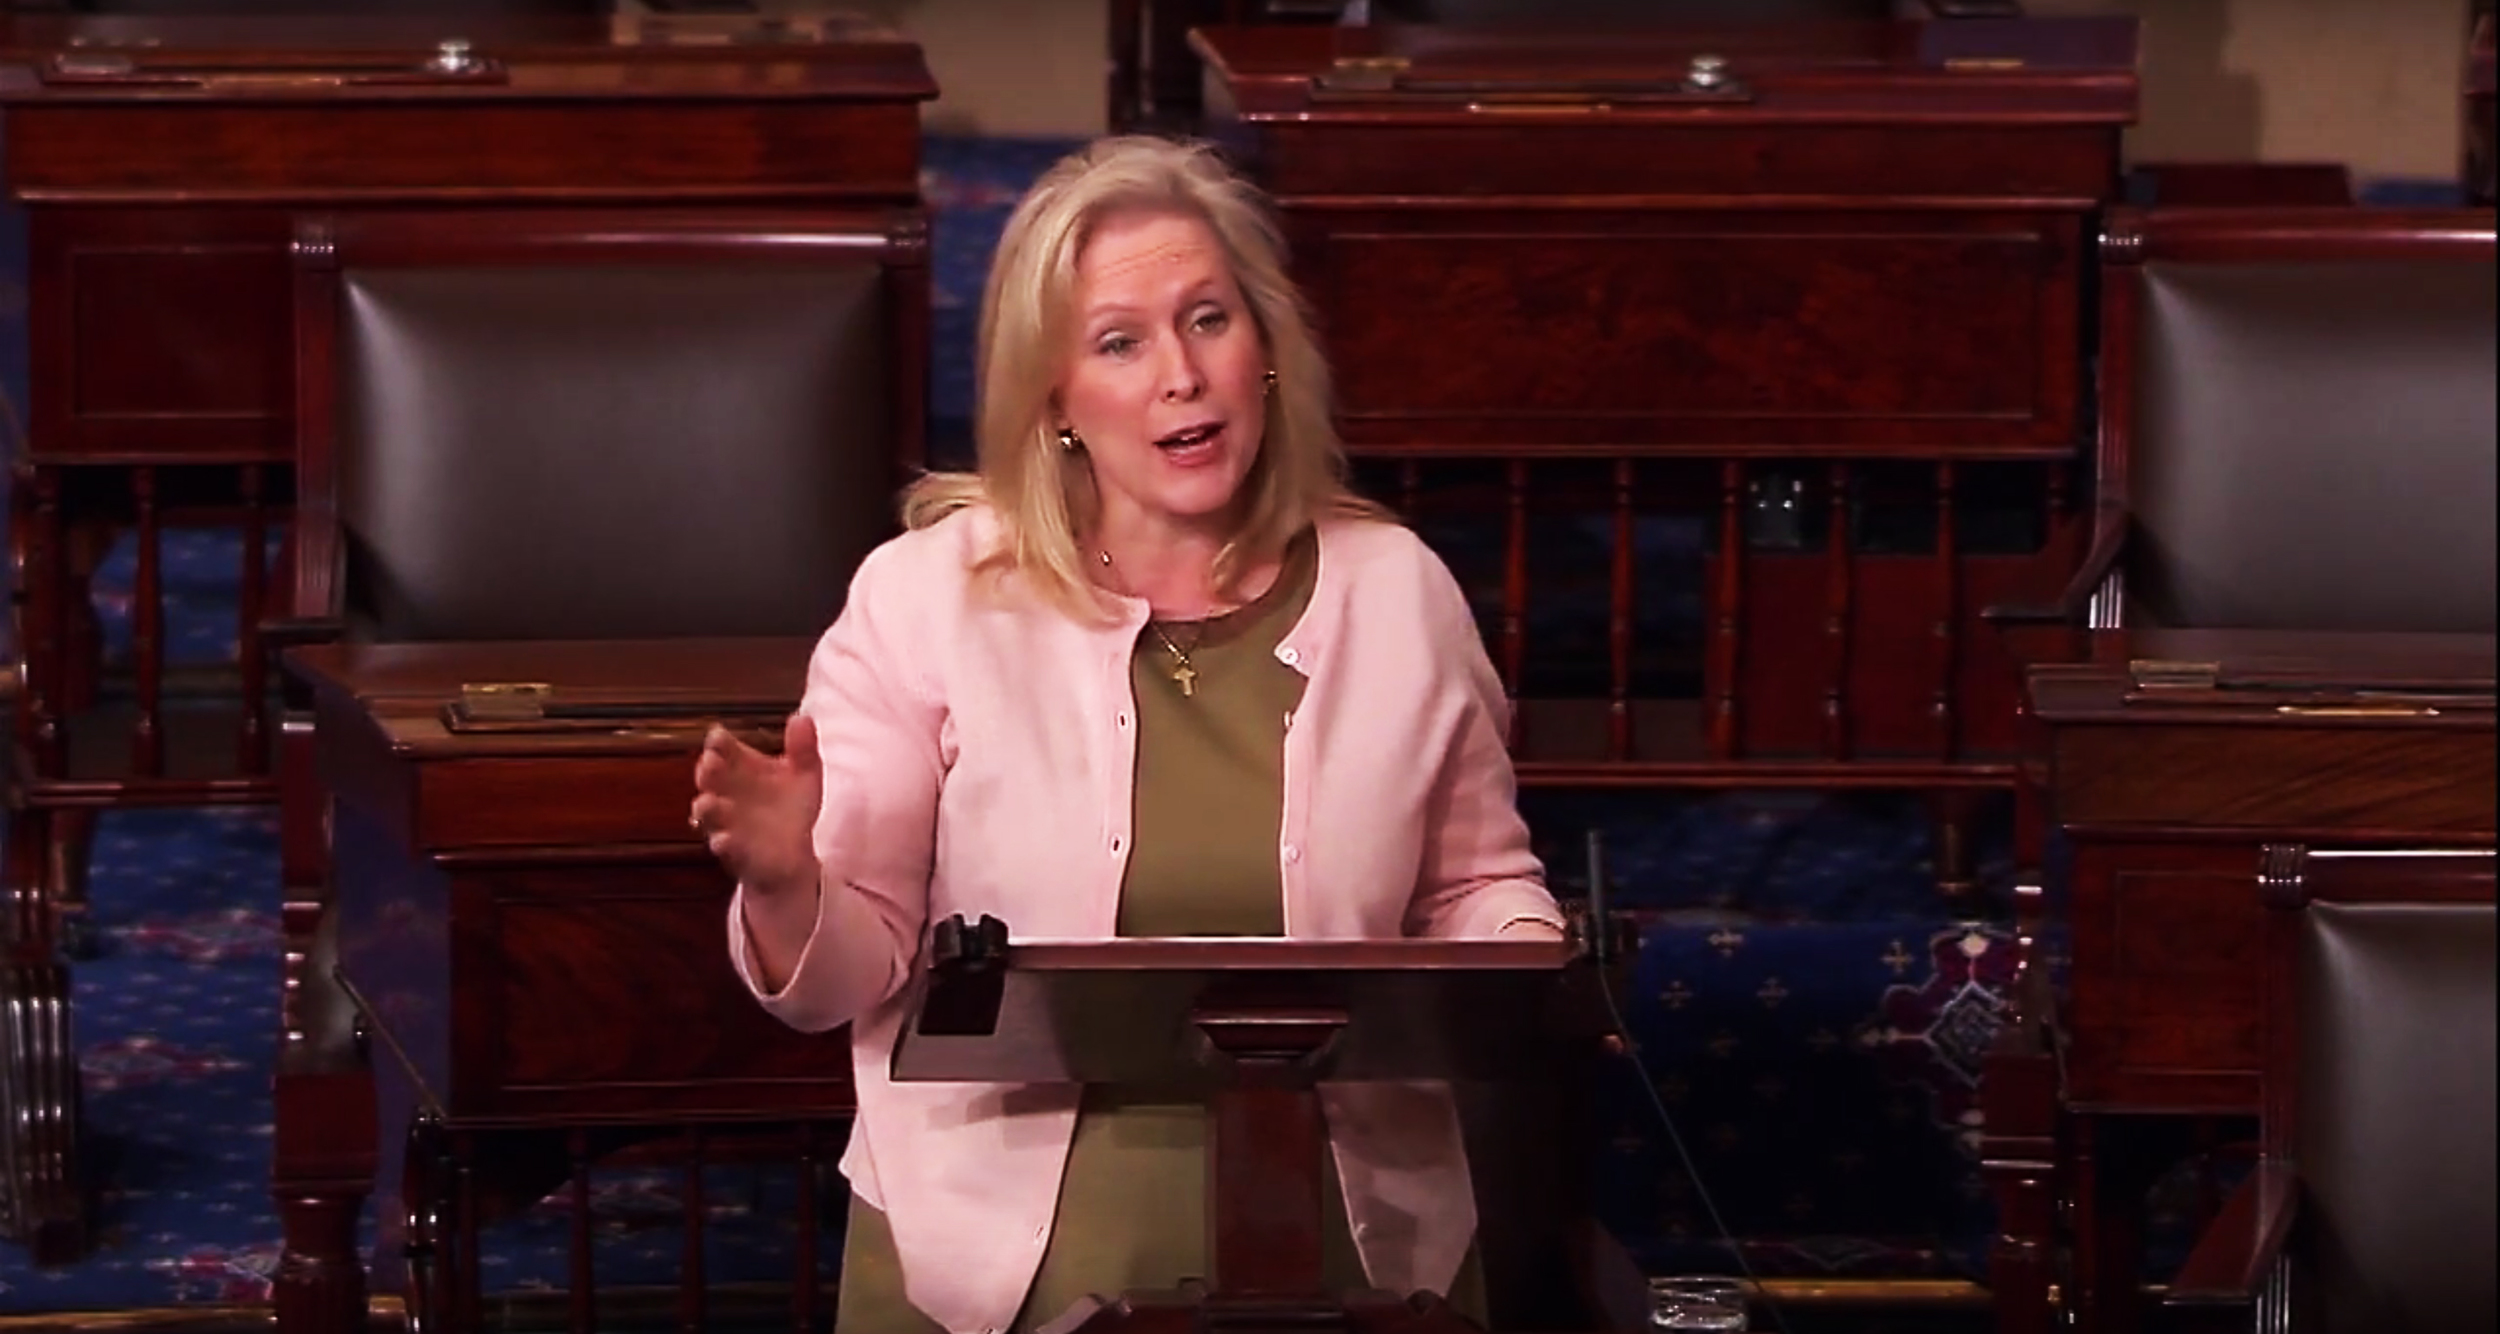 U.S. Senator Kirsten Gillibrand read excerpts of We Believe You on the Senate floor while urging her colleagues to pass the bipartisan Campus Accountability and Safety Act.  Watch the video  and read the transcript of her speech on our website.